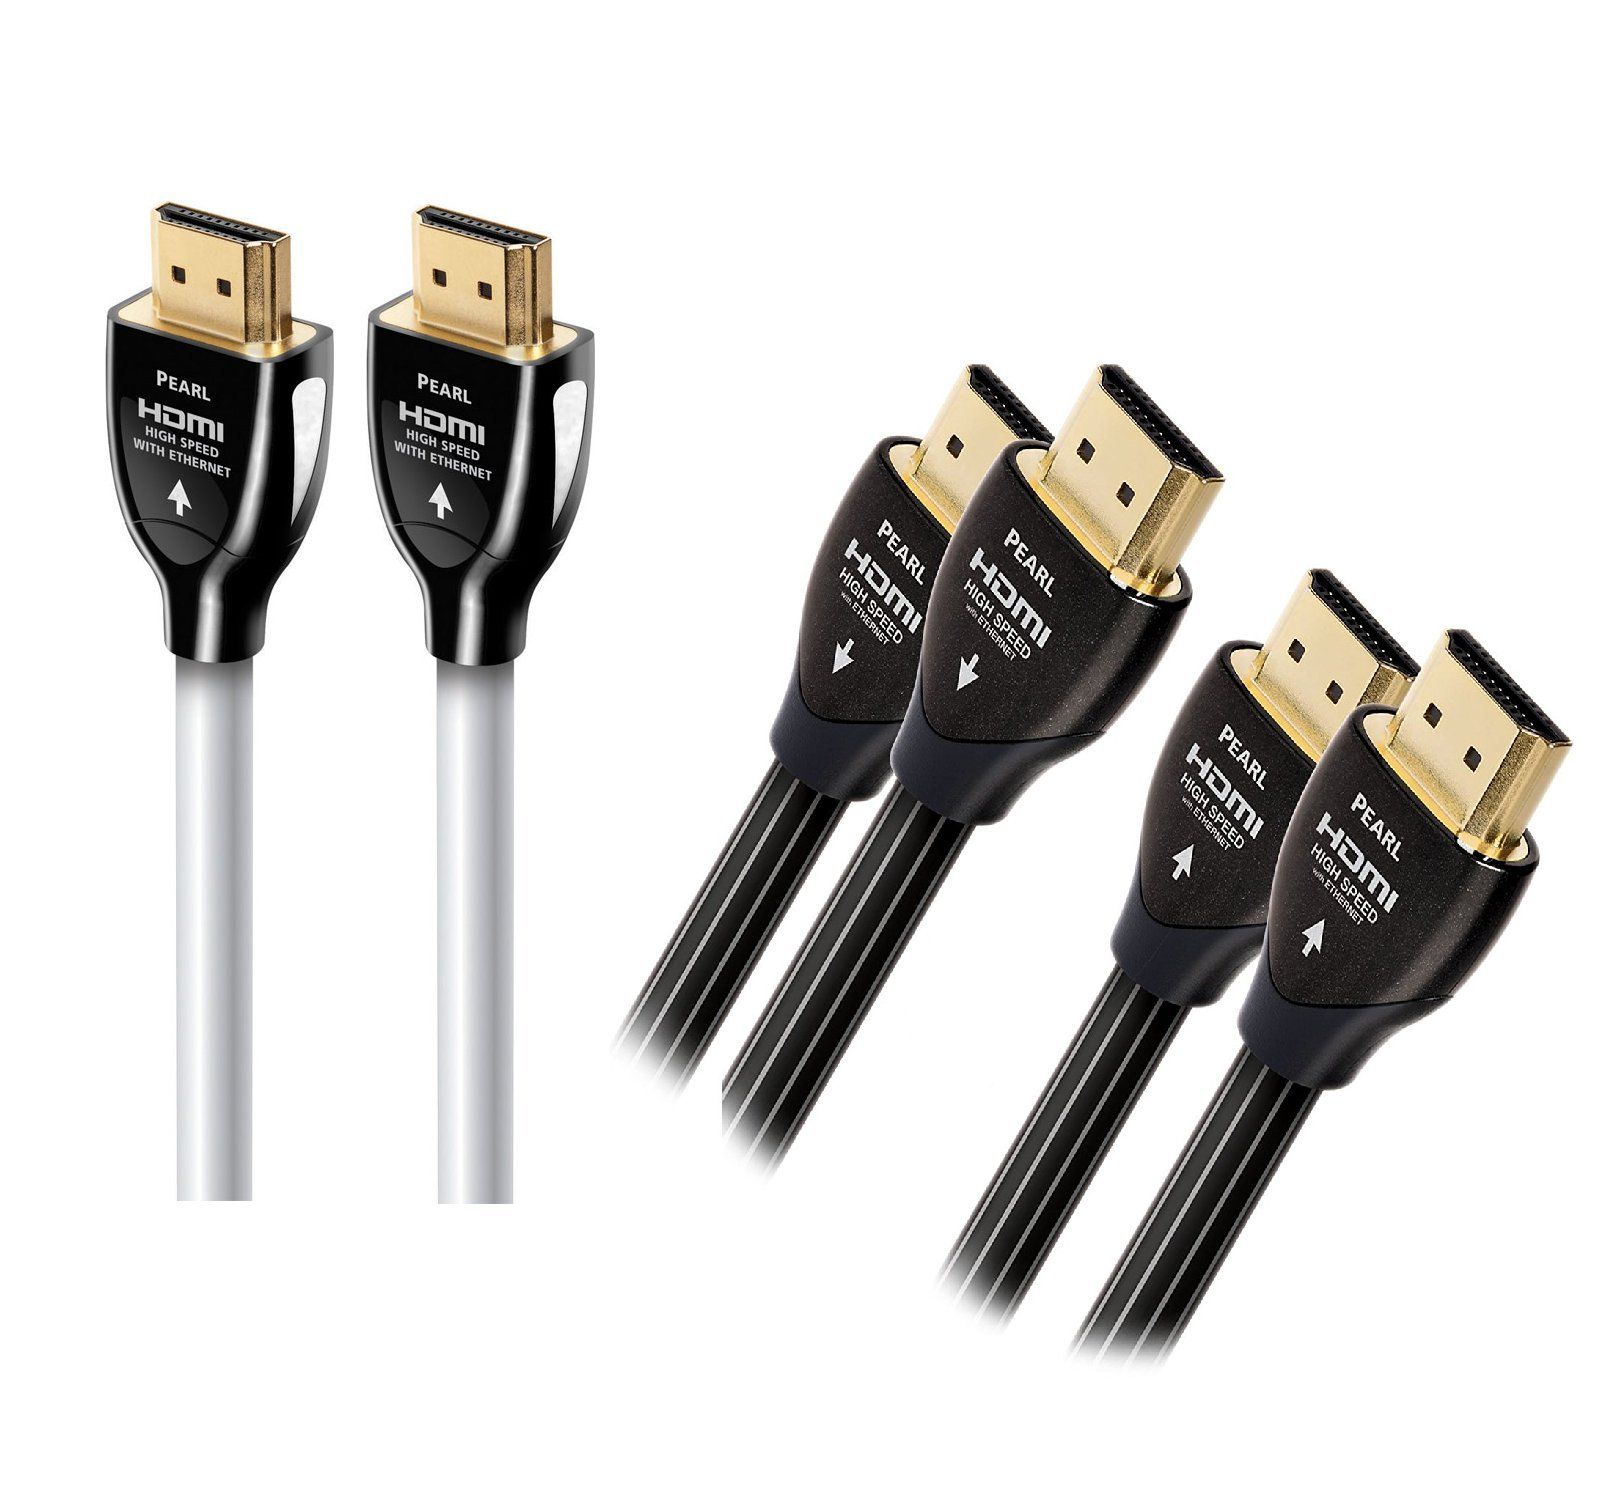 AudioQuest Pearl 8.0m (26.24 ft.) & Two Pearl 1m (3.28 ft.) Digital A/V HDMI Cable Bundle